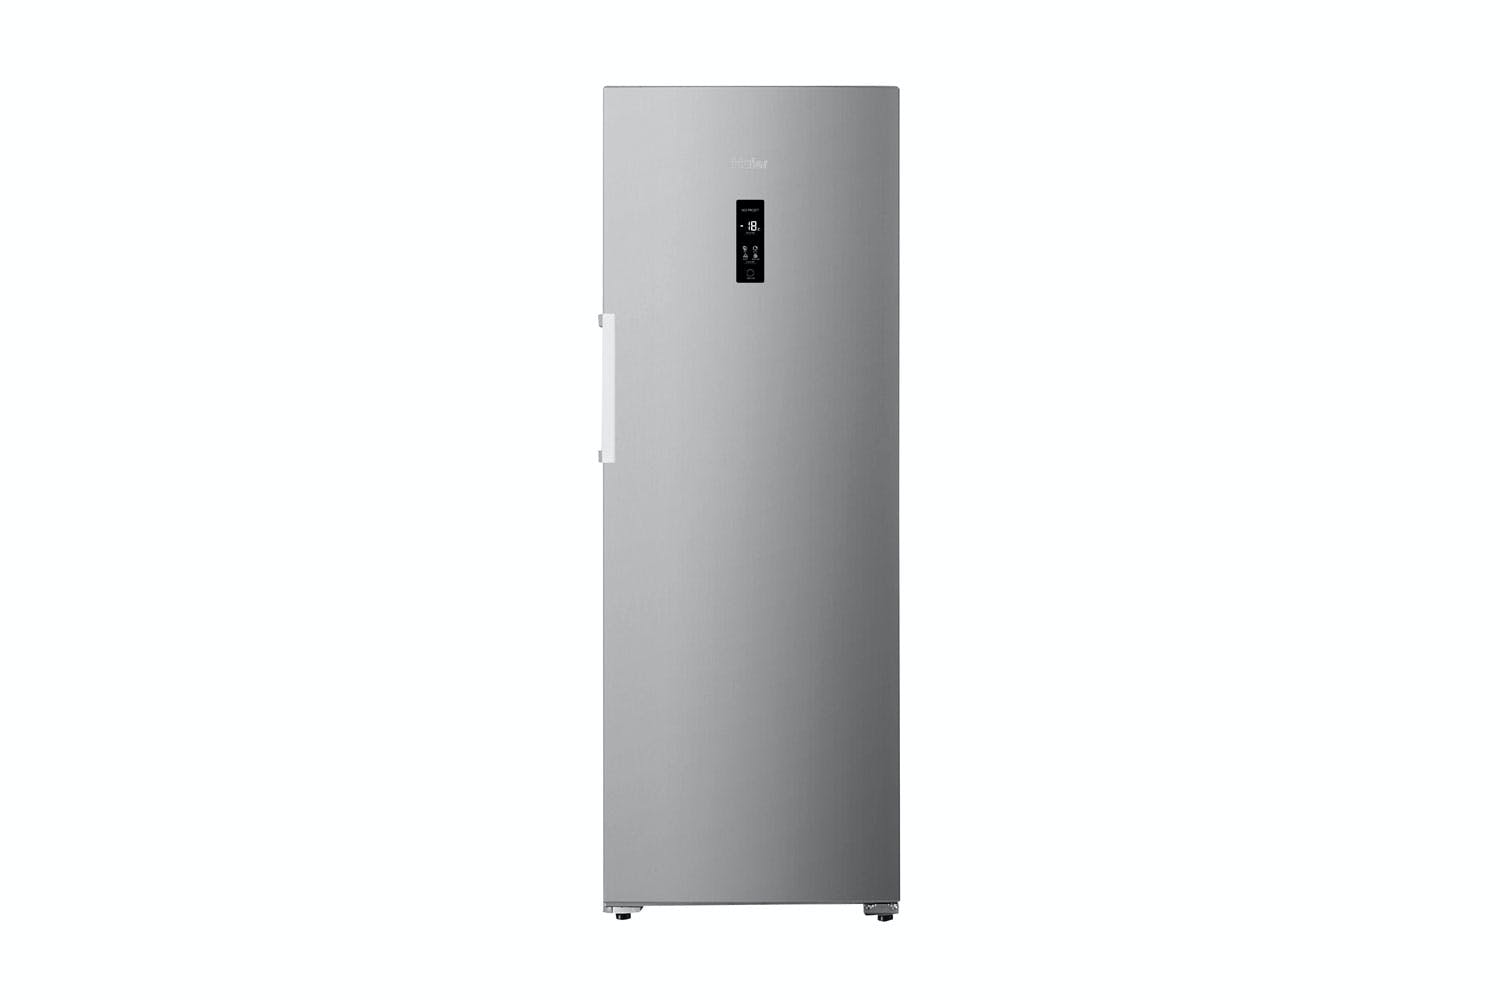 Vertical Freezers For Sale Haier 258l Vertical Freezer Stainless Steel Harvey Norman New